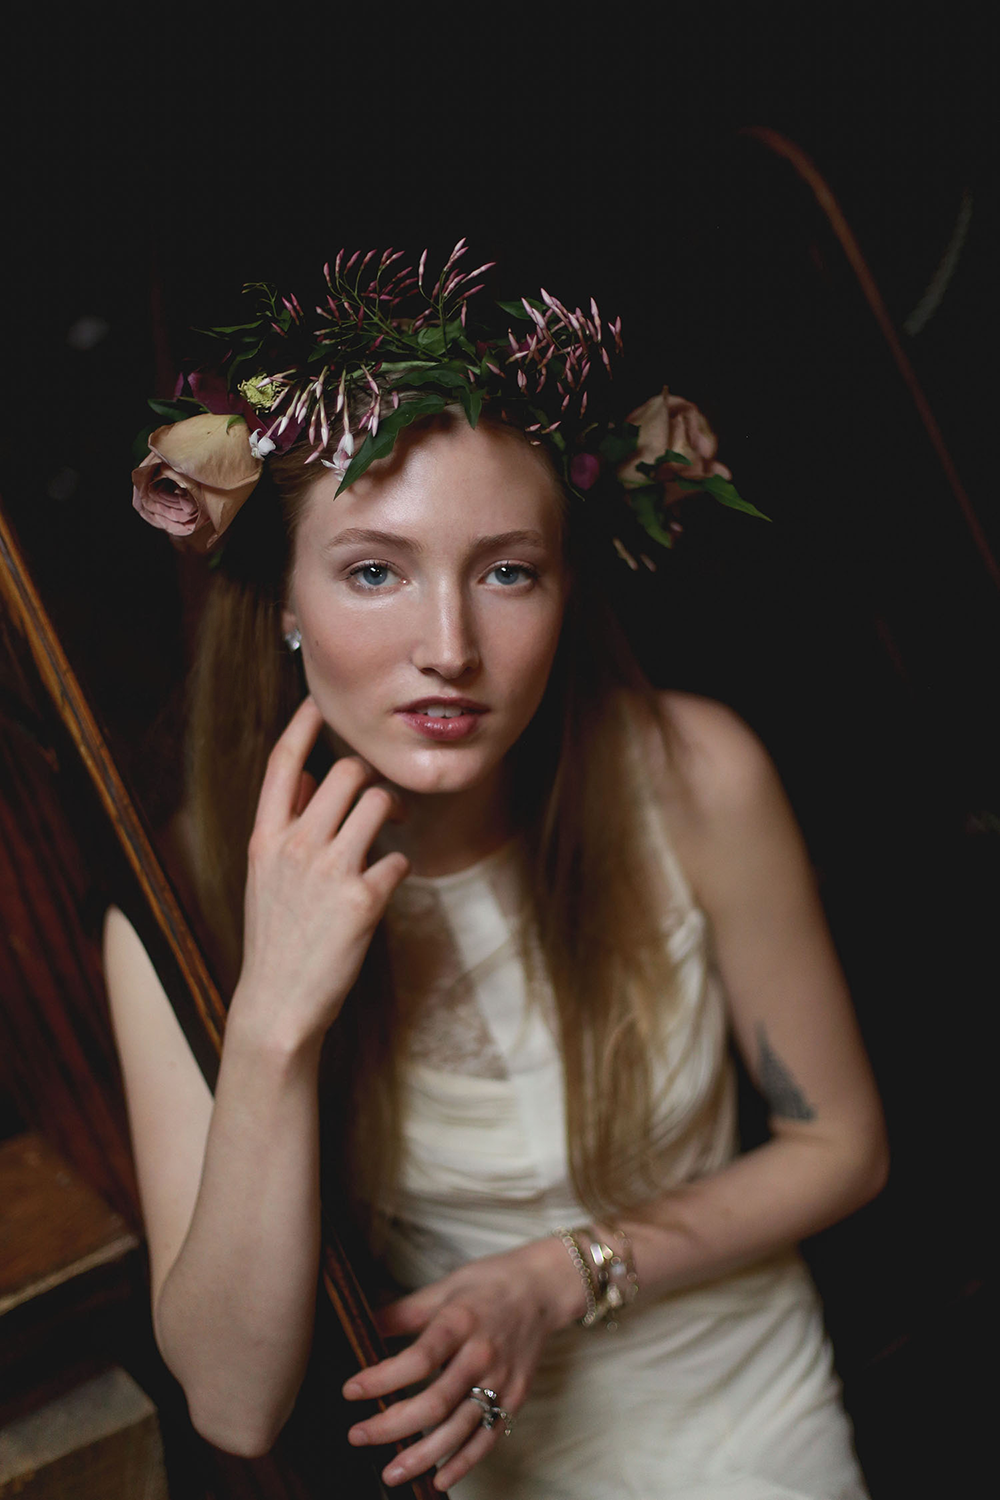 brooklyn-bridal-styled-shoot-12-1.png